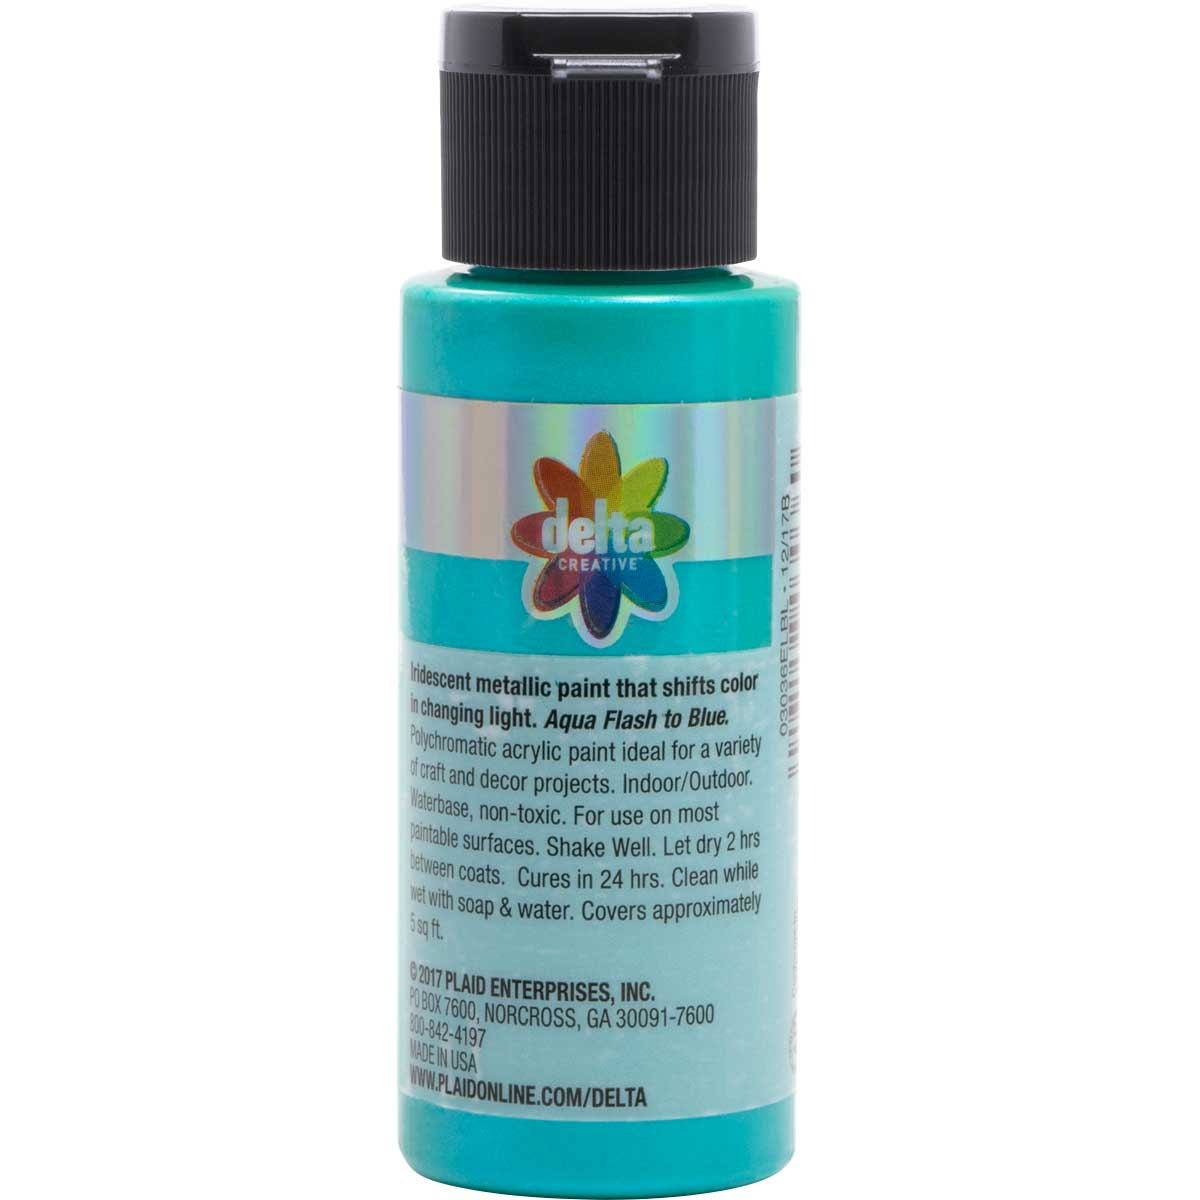 Delta Ceramcoat ® Acrylic Paint - Flash Metallic Aqua, 2 oz. - 03036